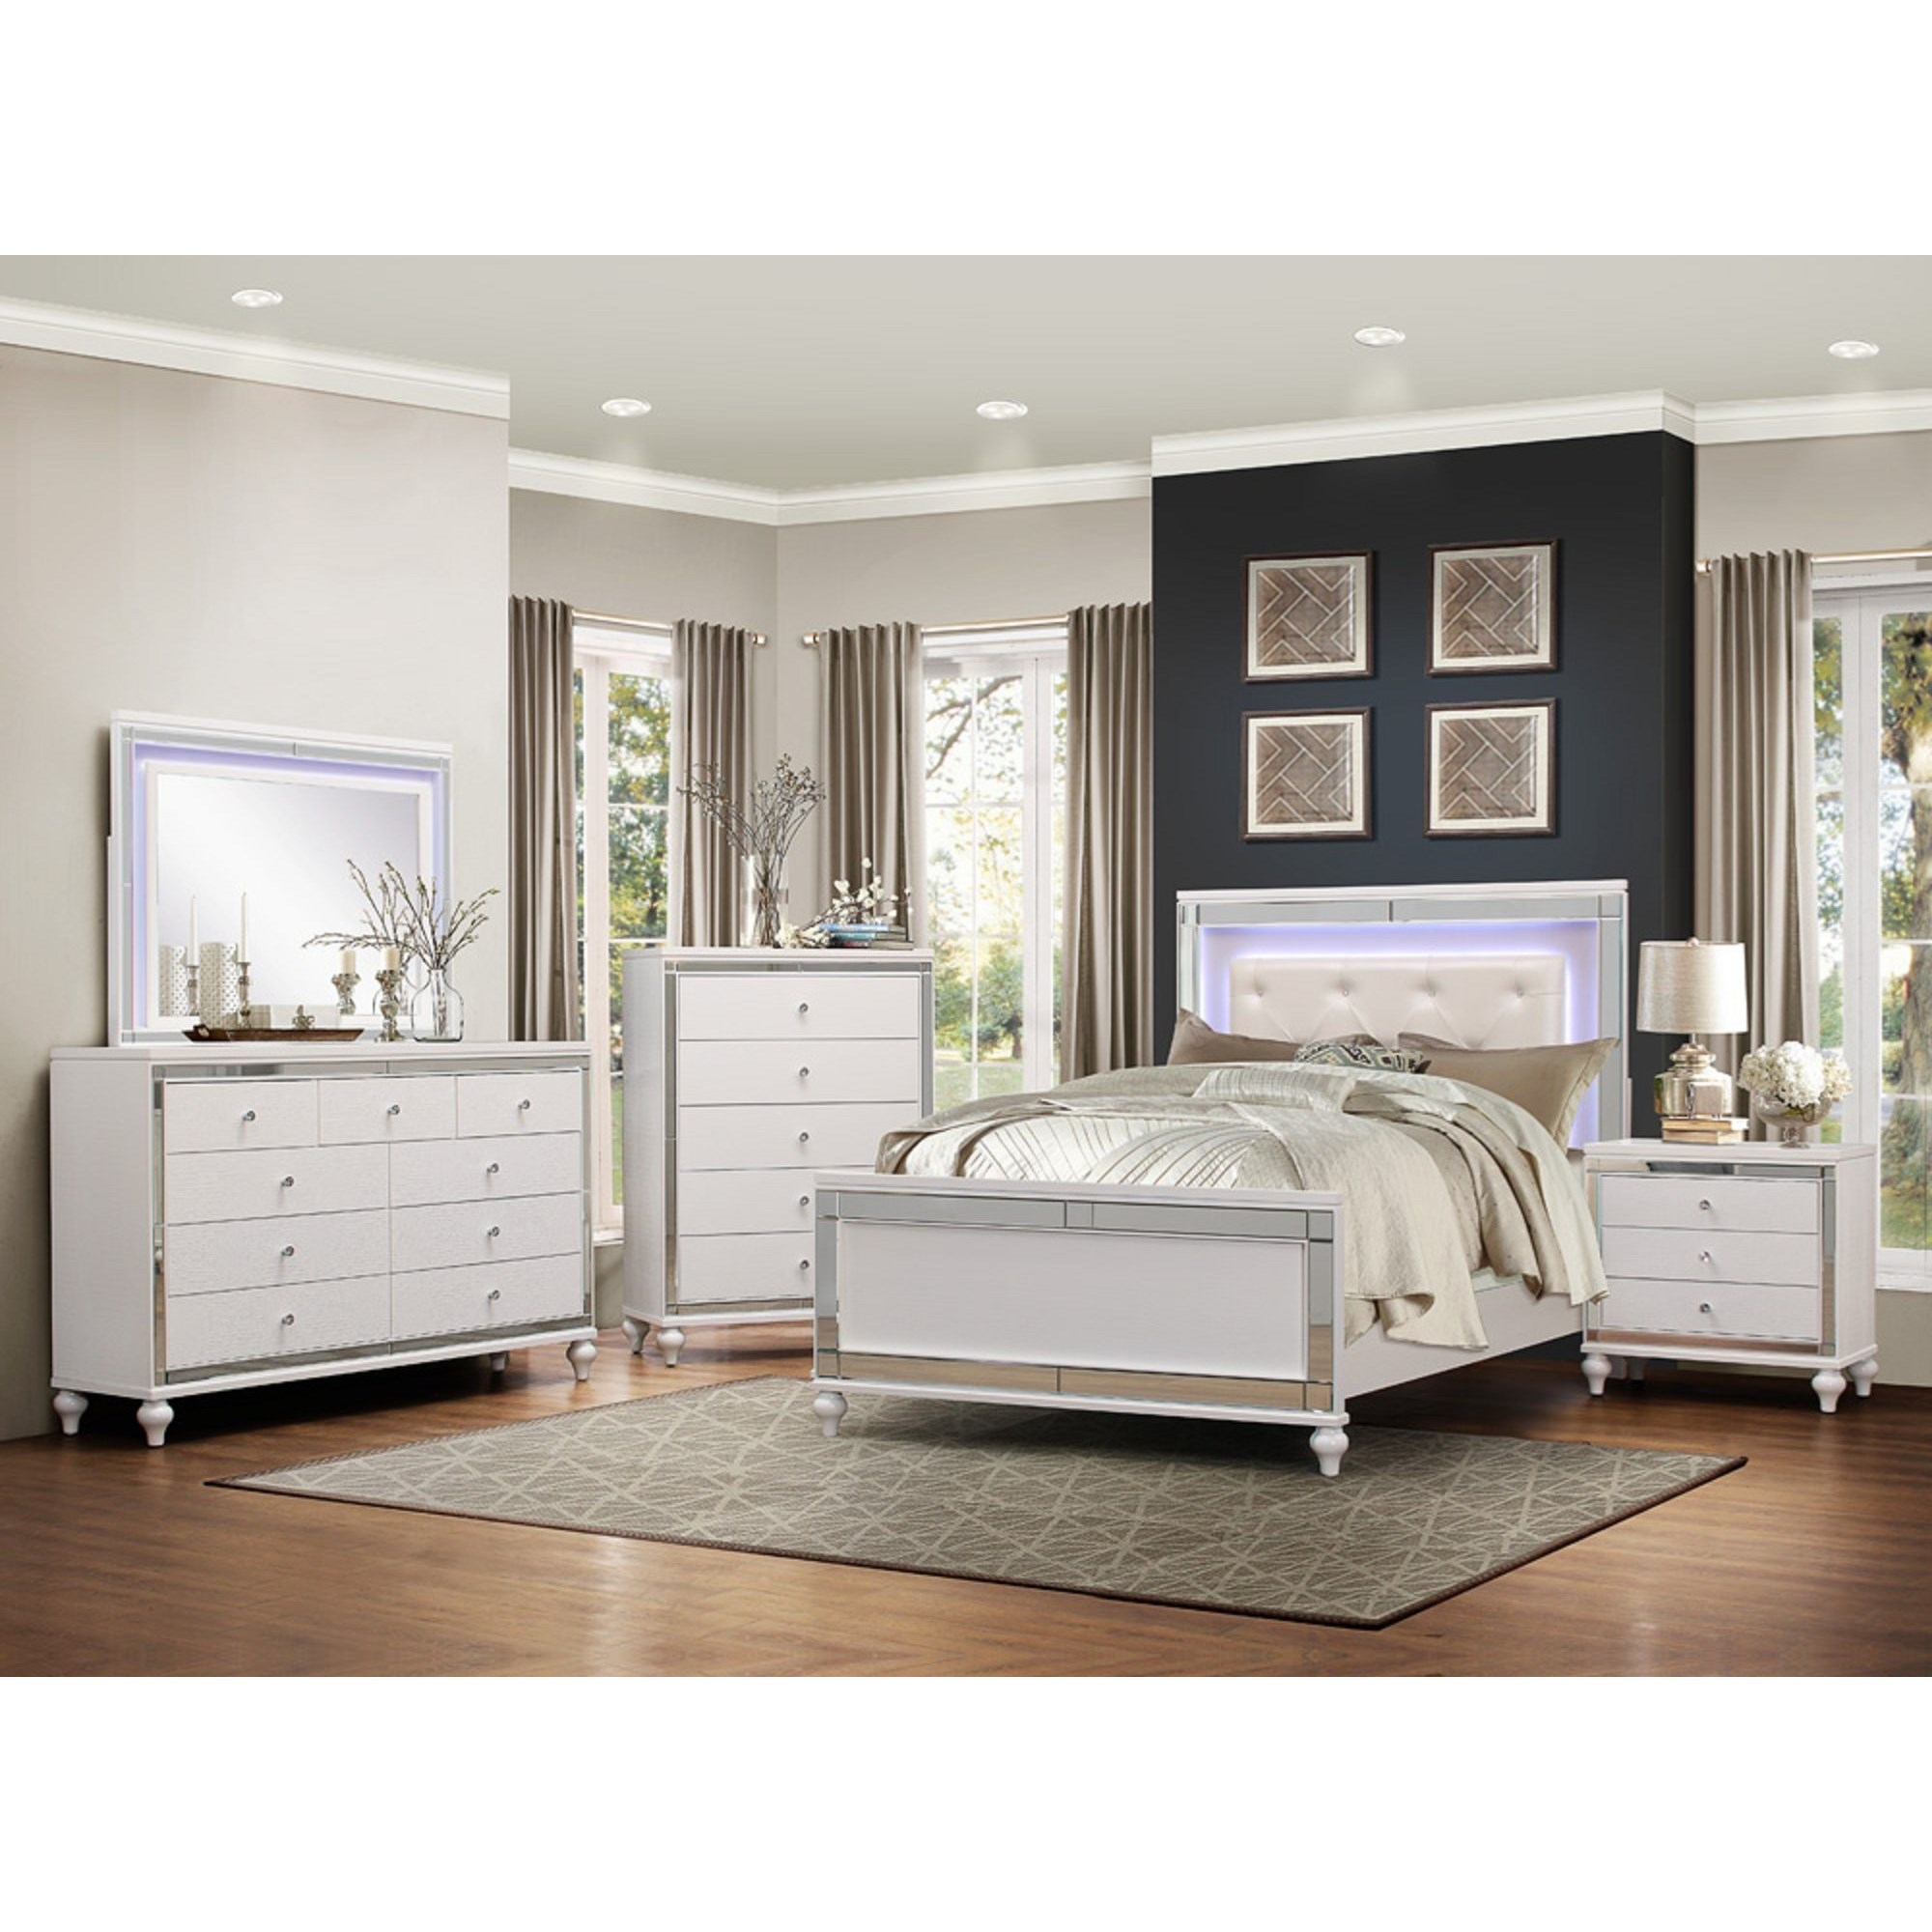 Alonza Queen Bedroom Group without Chest by Homelegance at Simply Home by Lindy's